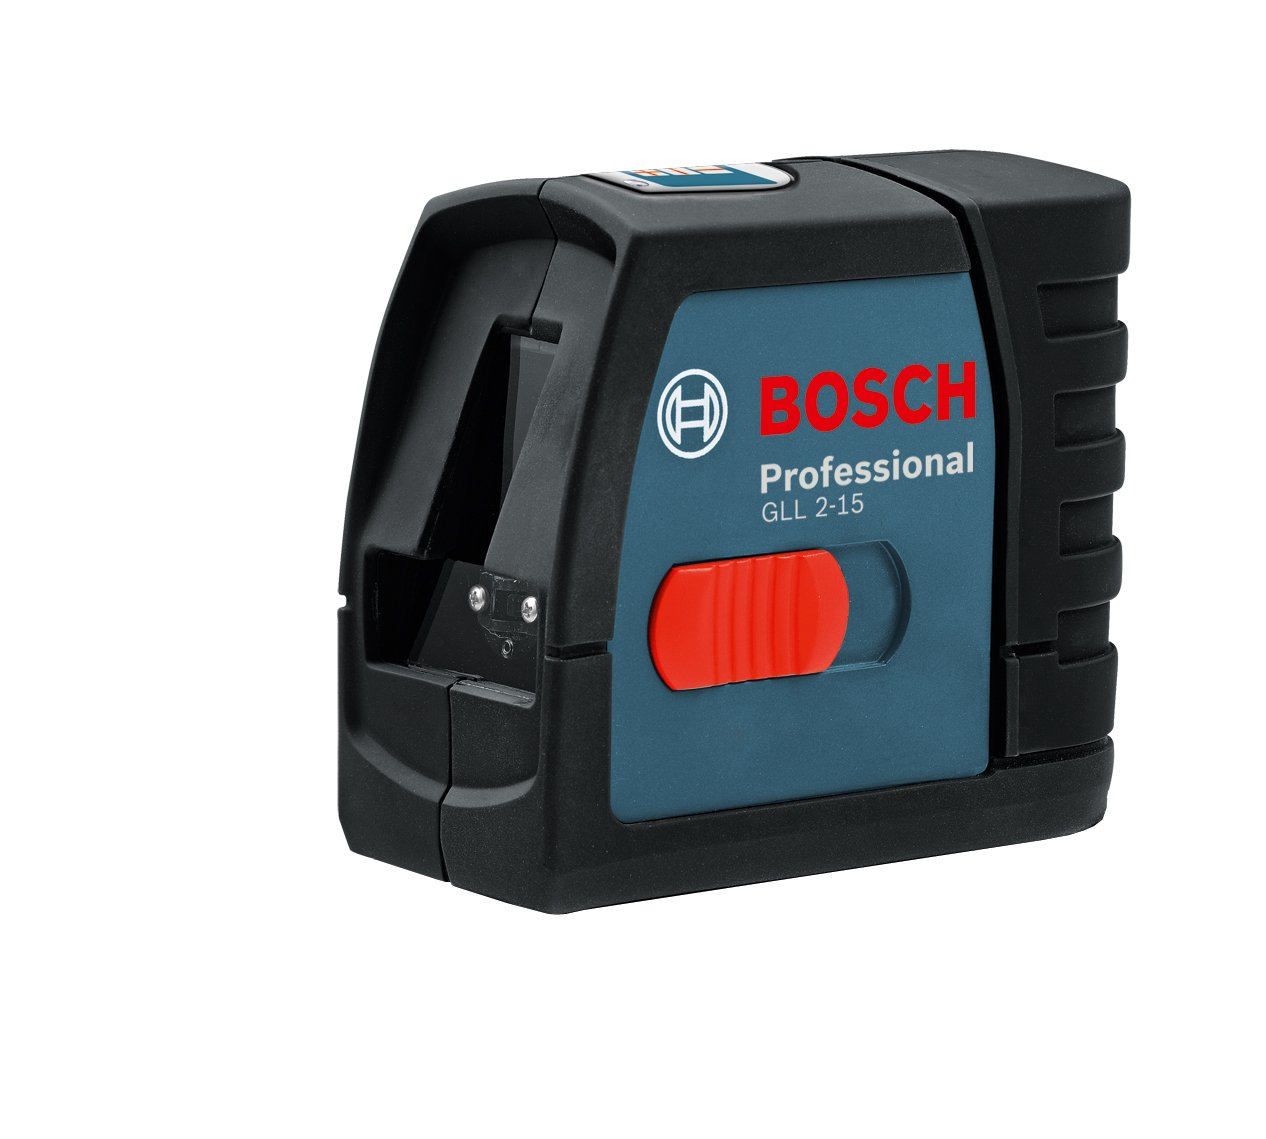 Bosch GLL 2-15 Self-Leveling Cross-Line Laser Kit- Discontinued by Manufacturer